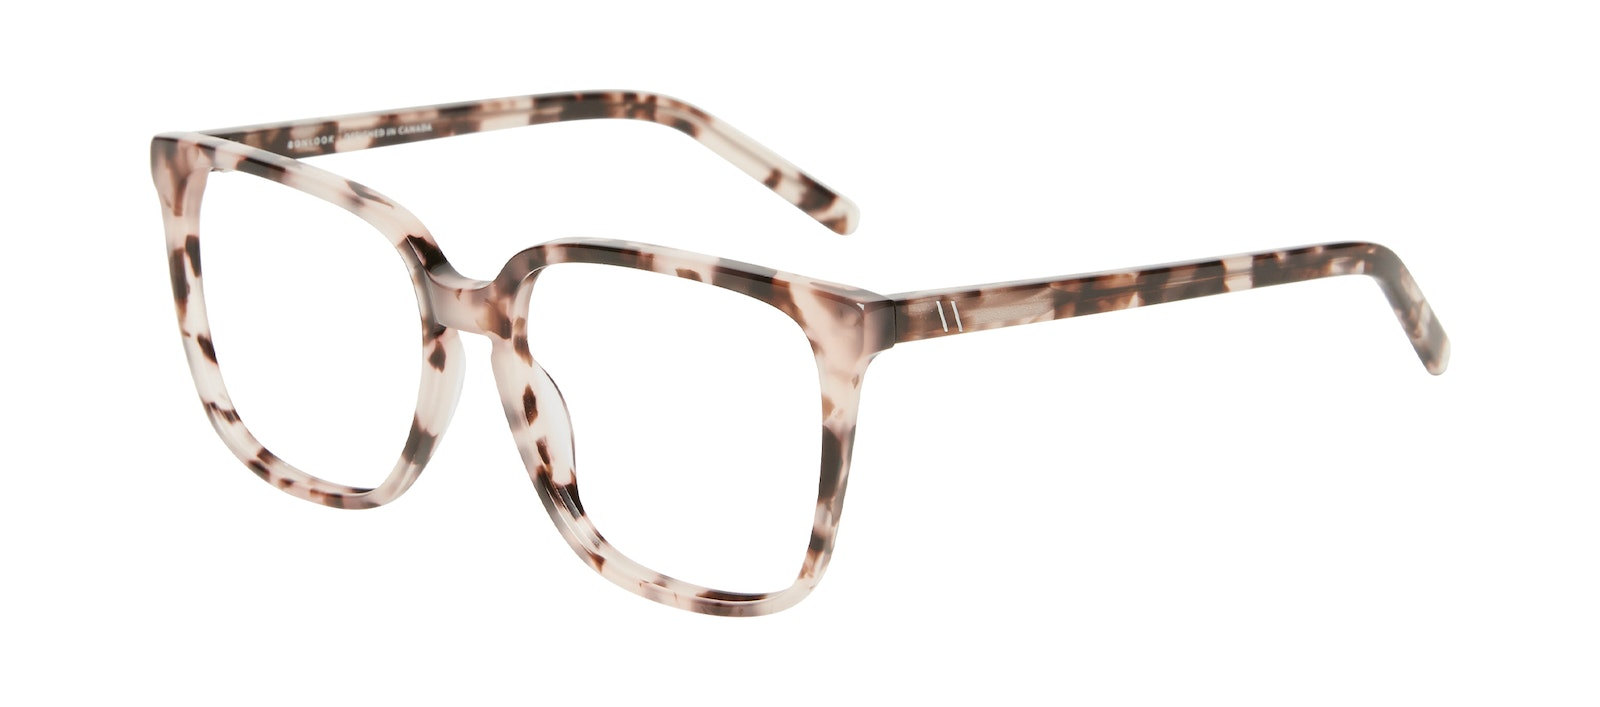 Affordable Fashion Glasses Square Eyeglasses Women Runway L Marbled Pink Tilt